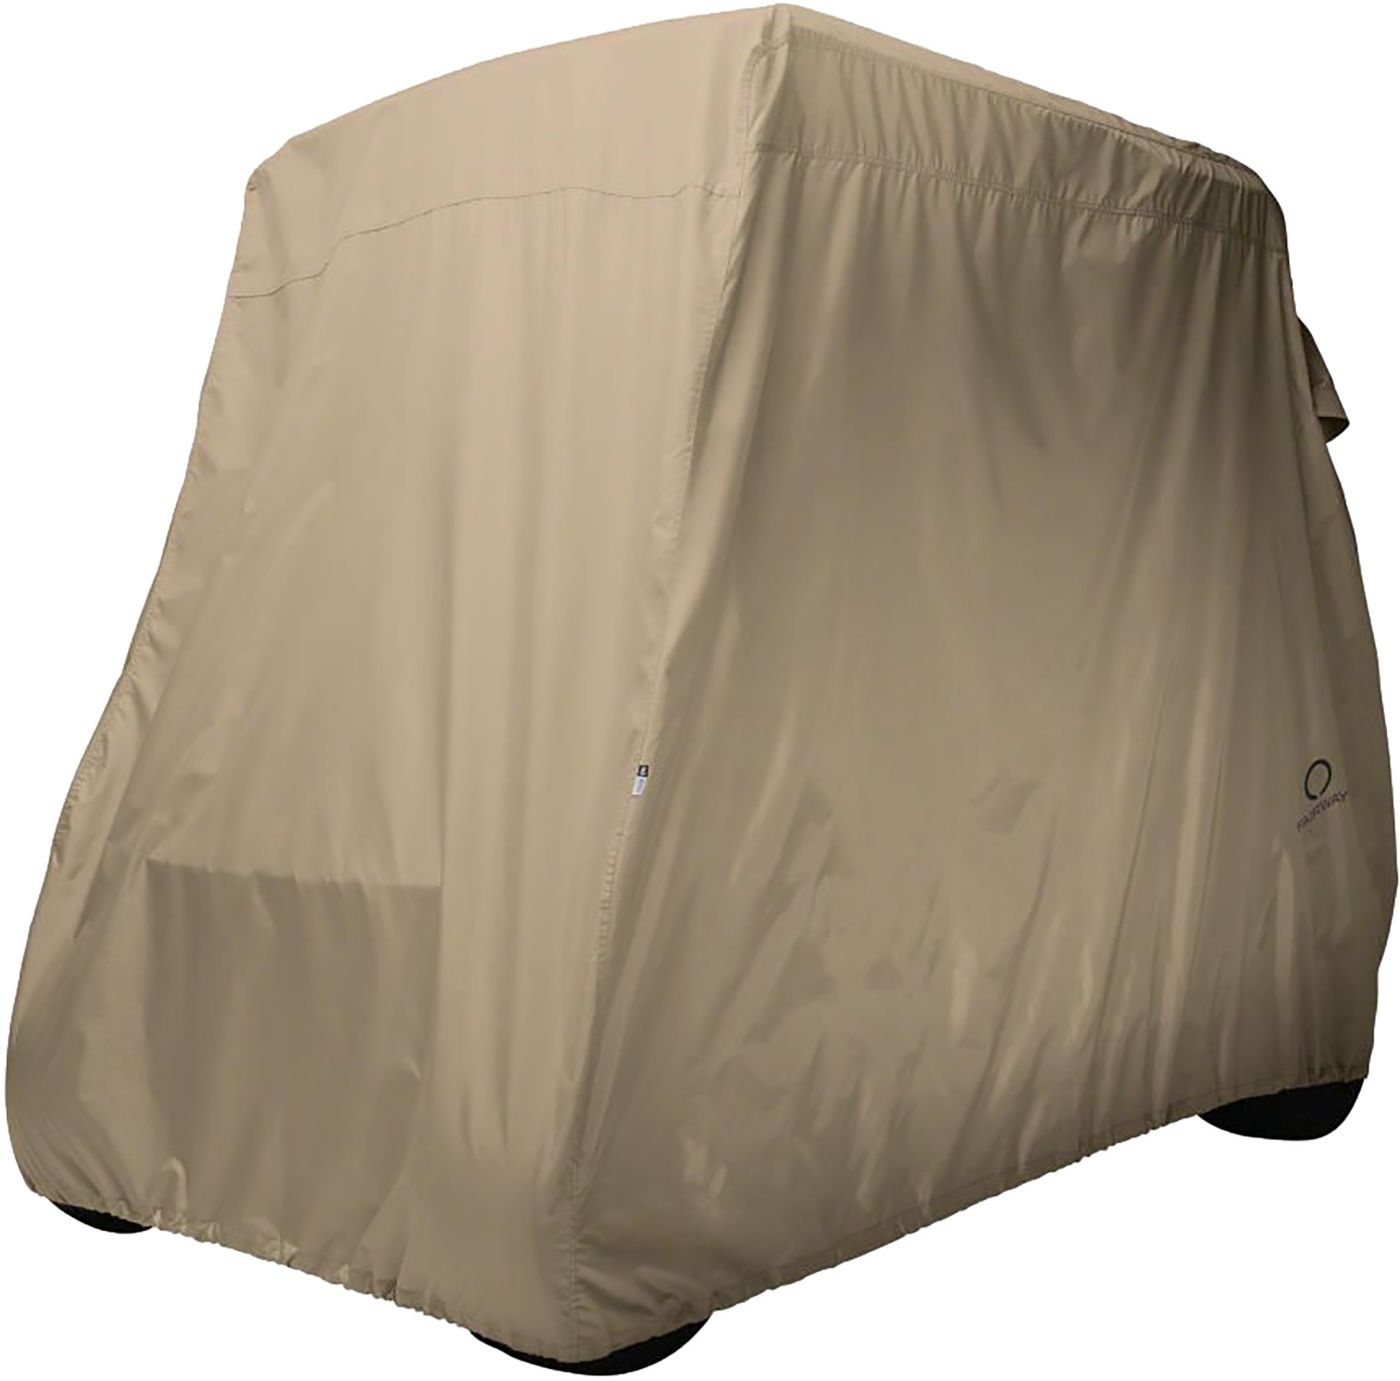 Classic Accessories Fairway Long Golf Cart Cover – Khaki